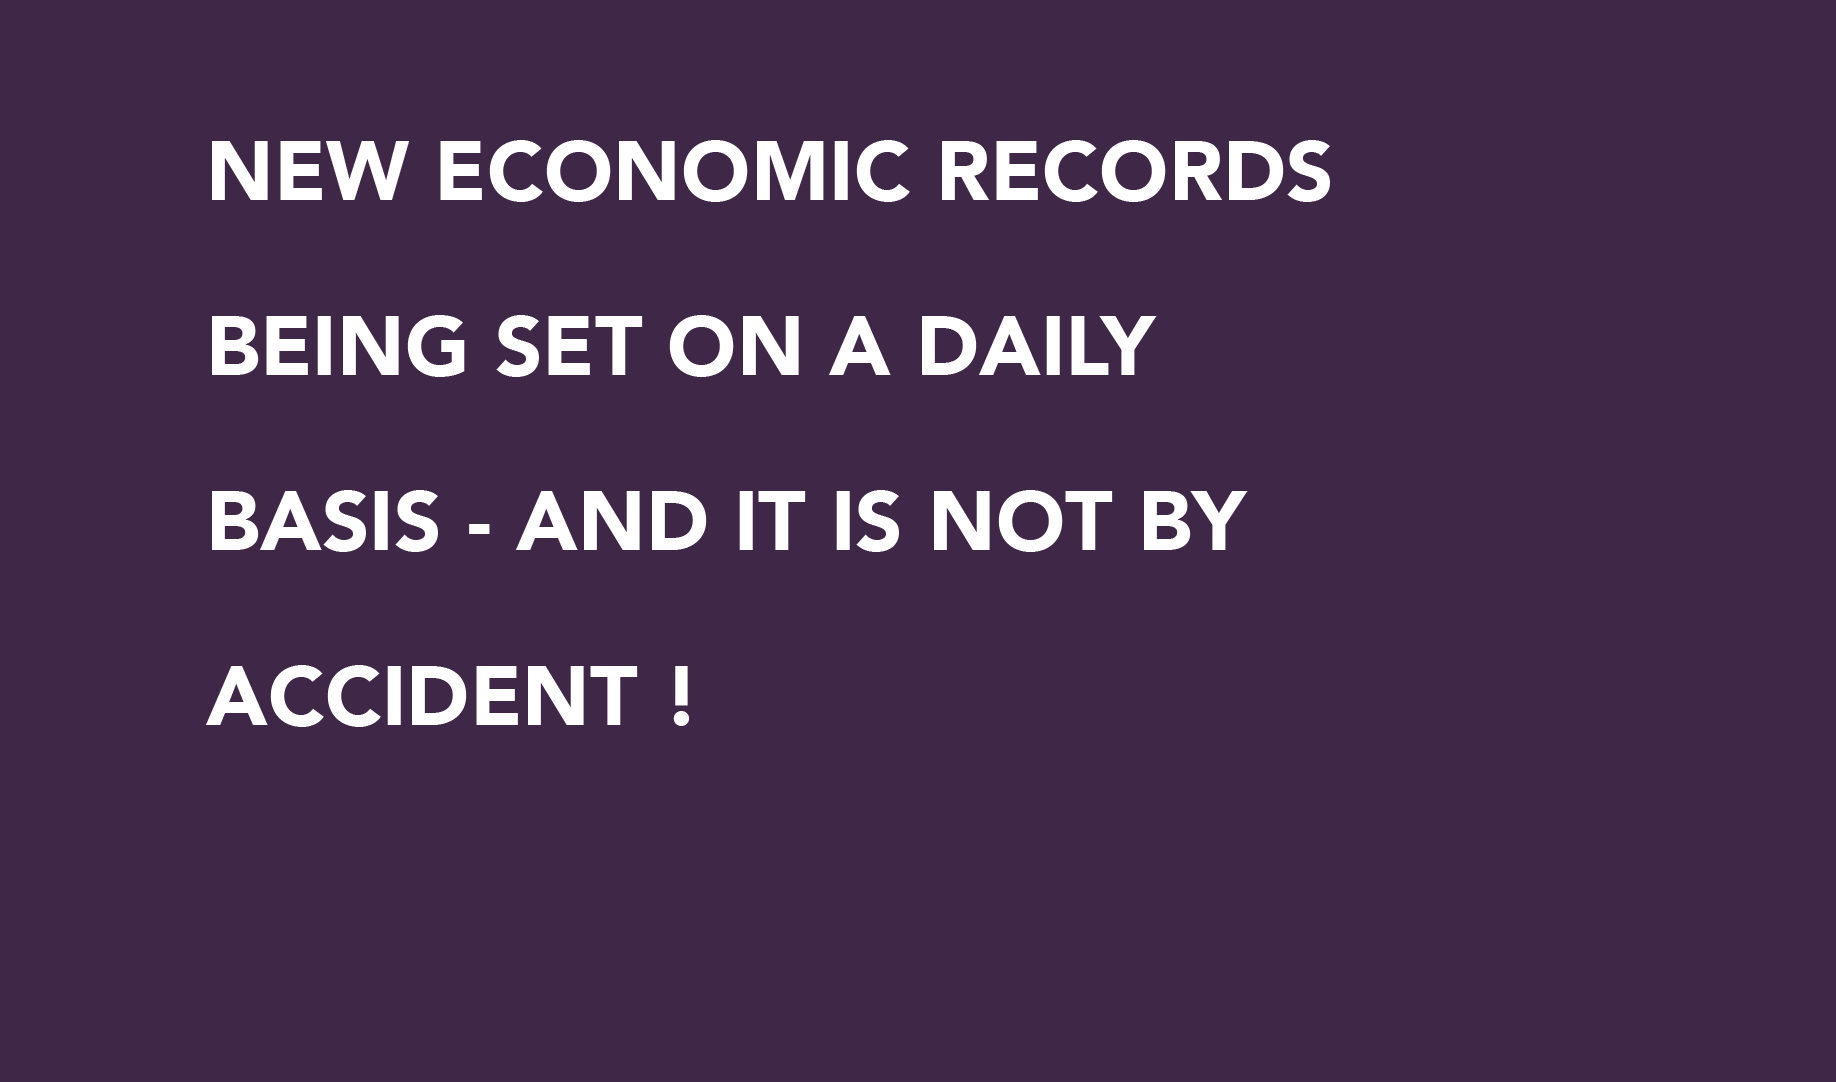 New Economic Records Being Set On A Daily Basis – And It Is Not By Accident!